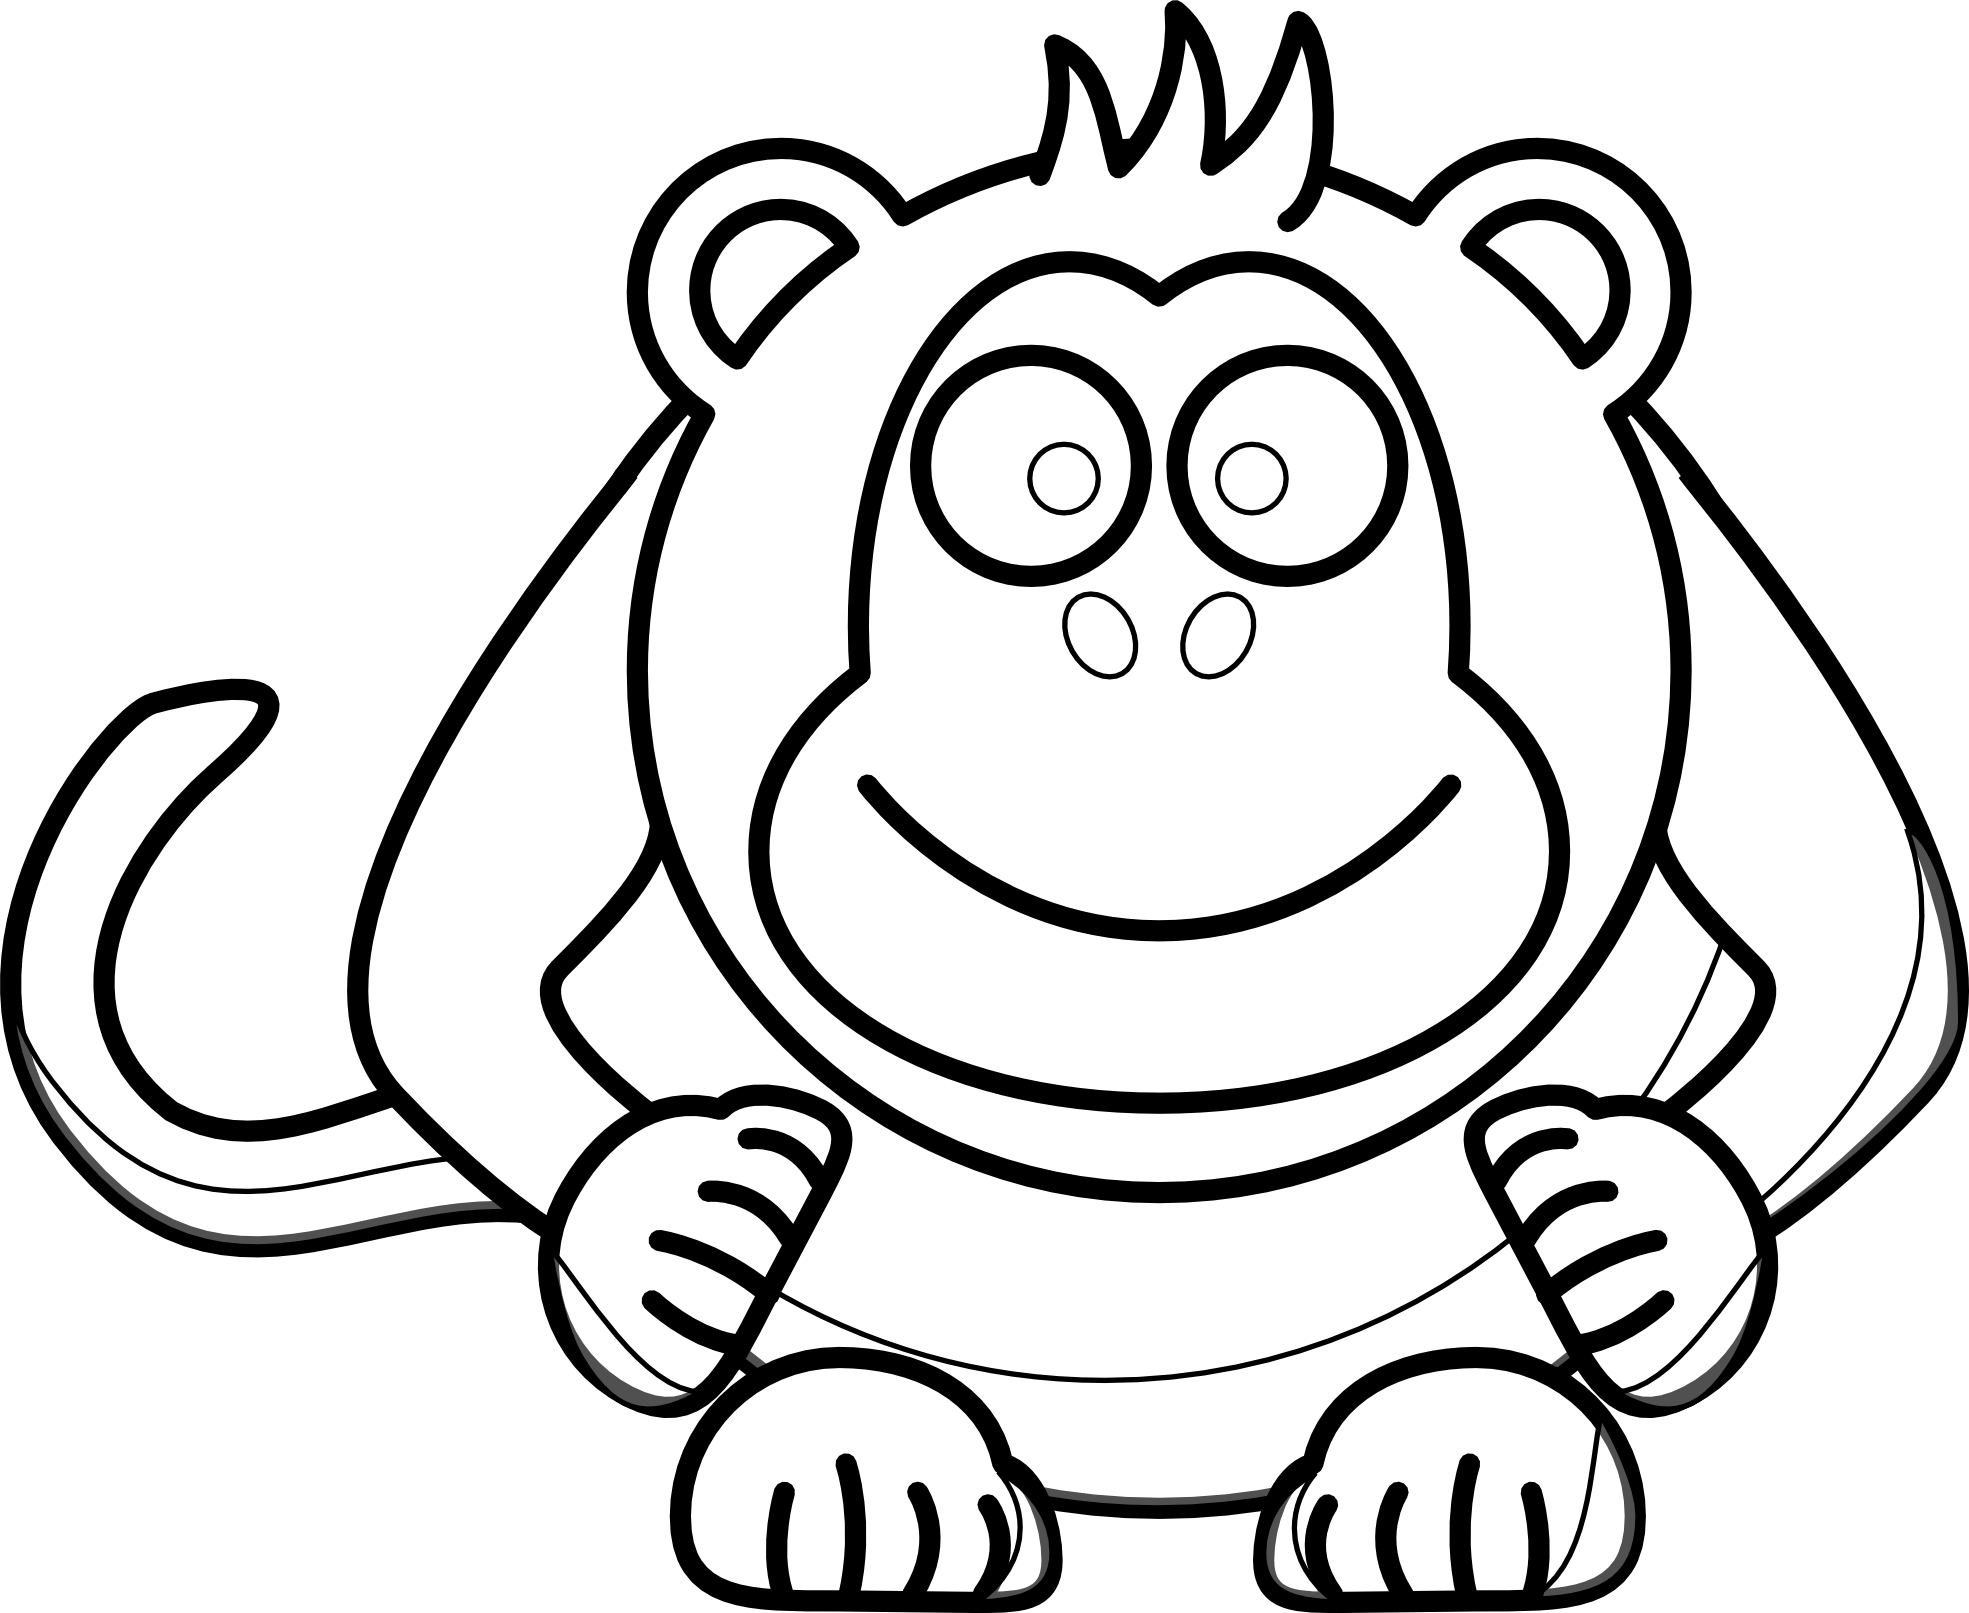 Pajamas clipart black and white. Monkey panda free images